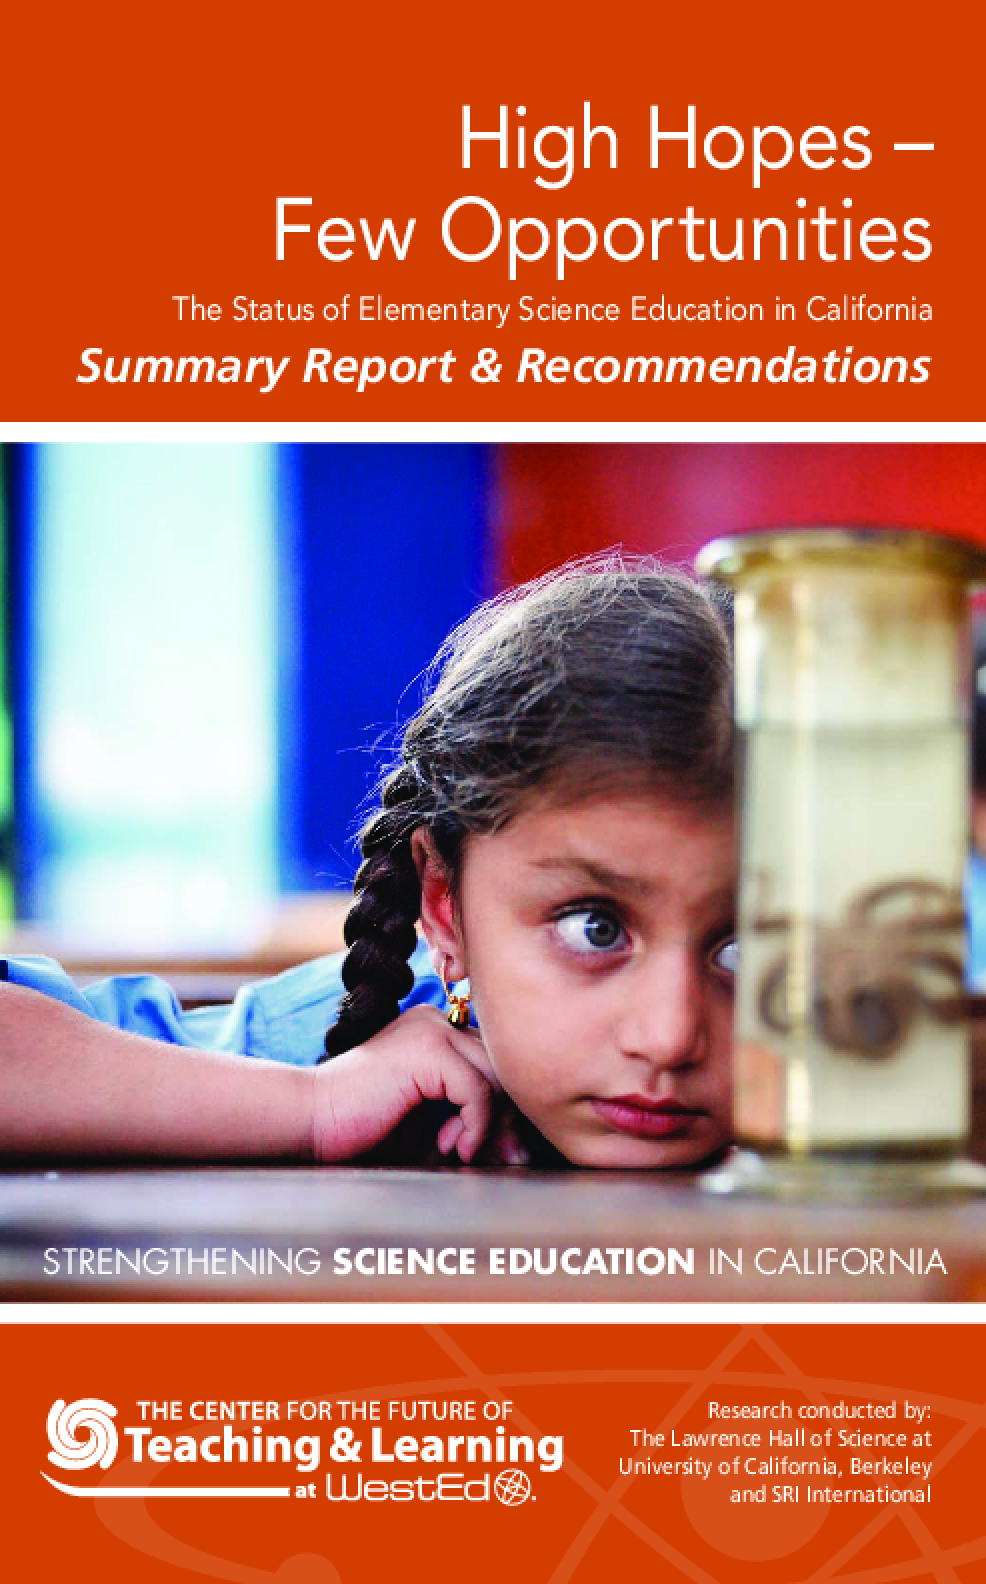 High Hopes, Few Opportunities (Summary Report & Recommendations): The Status of Elementary Science Education in California